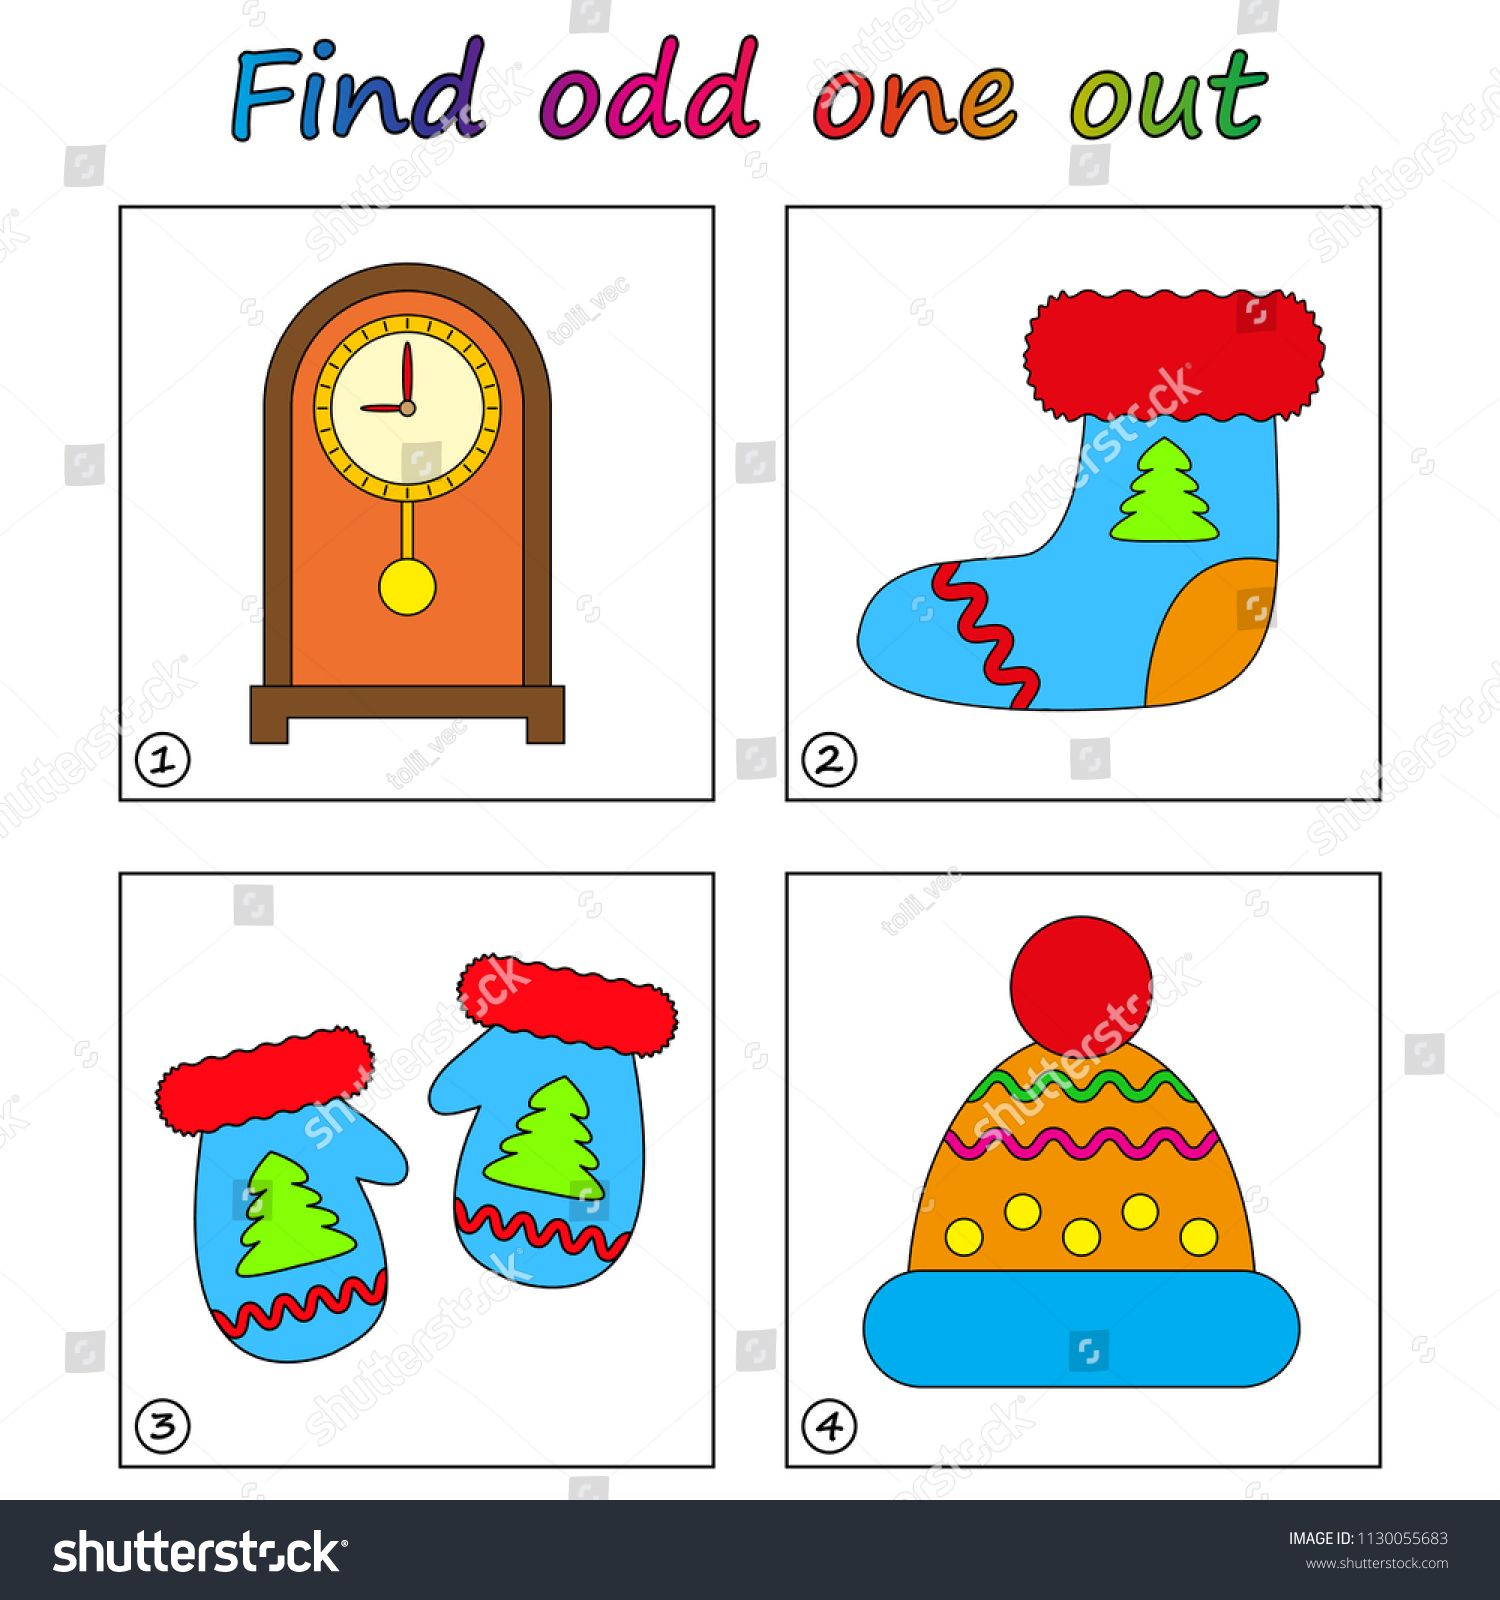 Find Odd One Out Game For Kids Worksheet Visual Educational Game For Children Ad Affiliate Educational Games Games For Kids Educational Games For Kids [ 1600 x 1500 Pixel ]